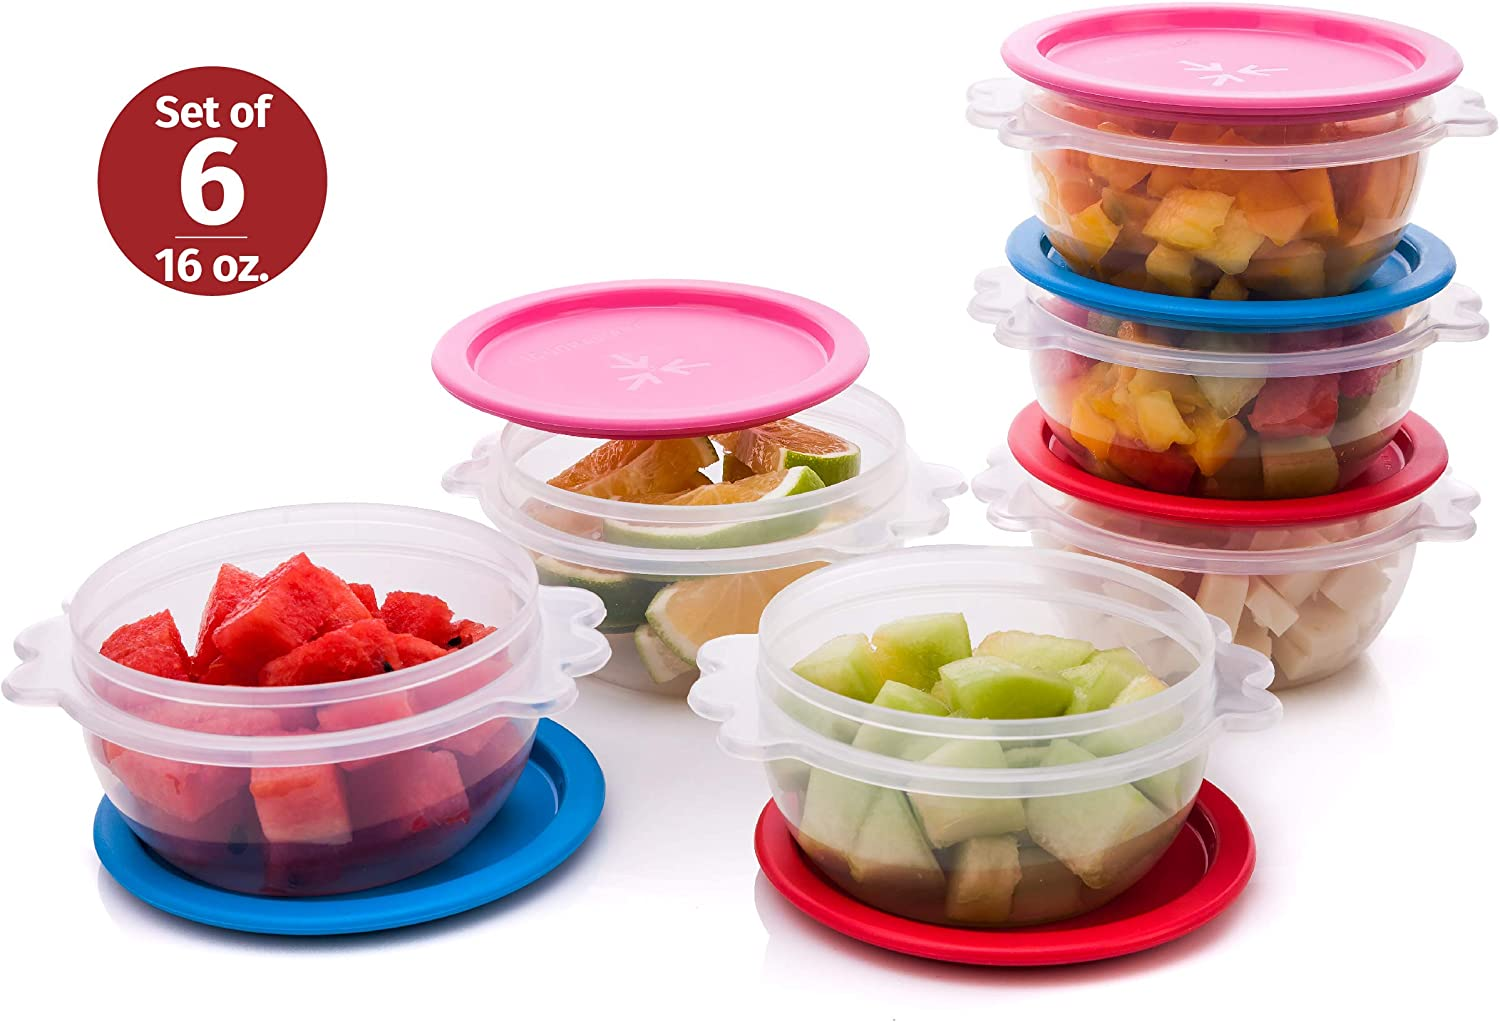 Reusable Plastic Food Storage Containers – Stackable Airtight Clear Bowls with Lids for Cereal, Soups, Snacks, Salads and more – Set of 6 500ml Bowls – Dishwasher, Microwave and Freezer Safe